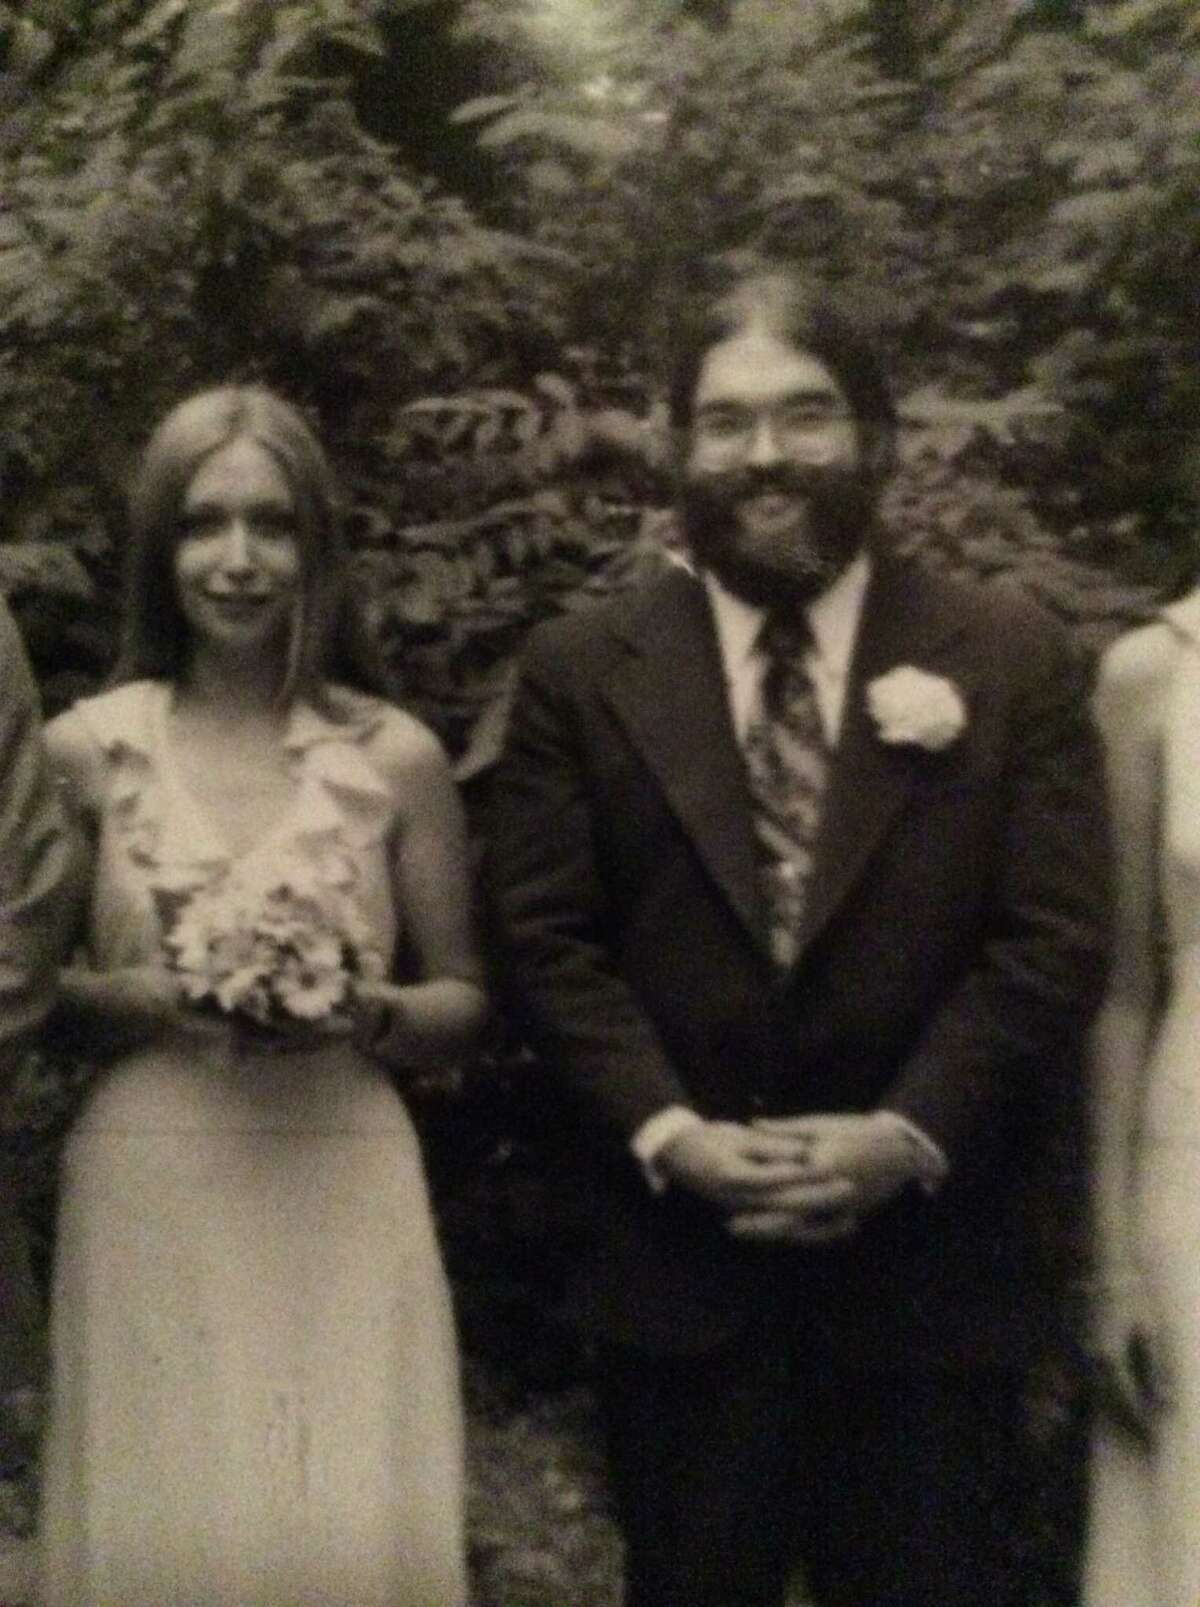 Lori Milks and her husband, Mike Milks, at the 1975 wedding of their friends Daniel and Judy Odell. (Courtesy the Odells)